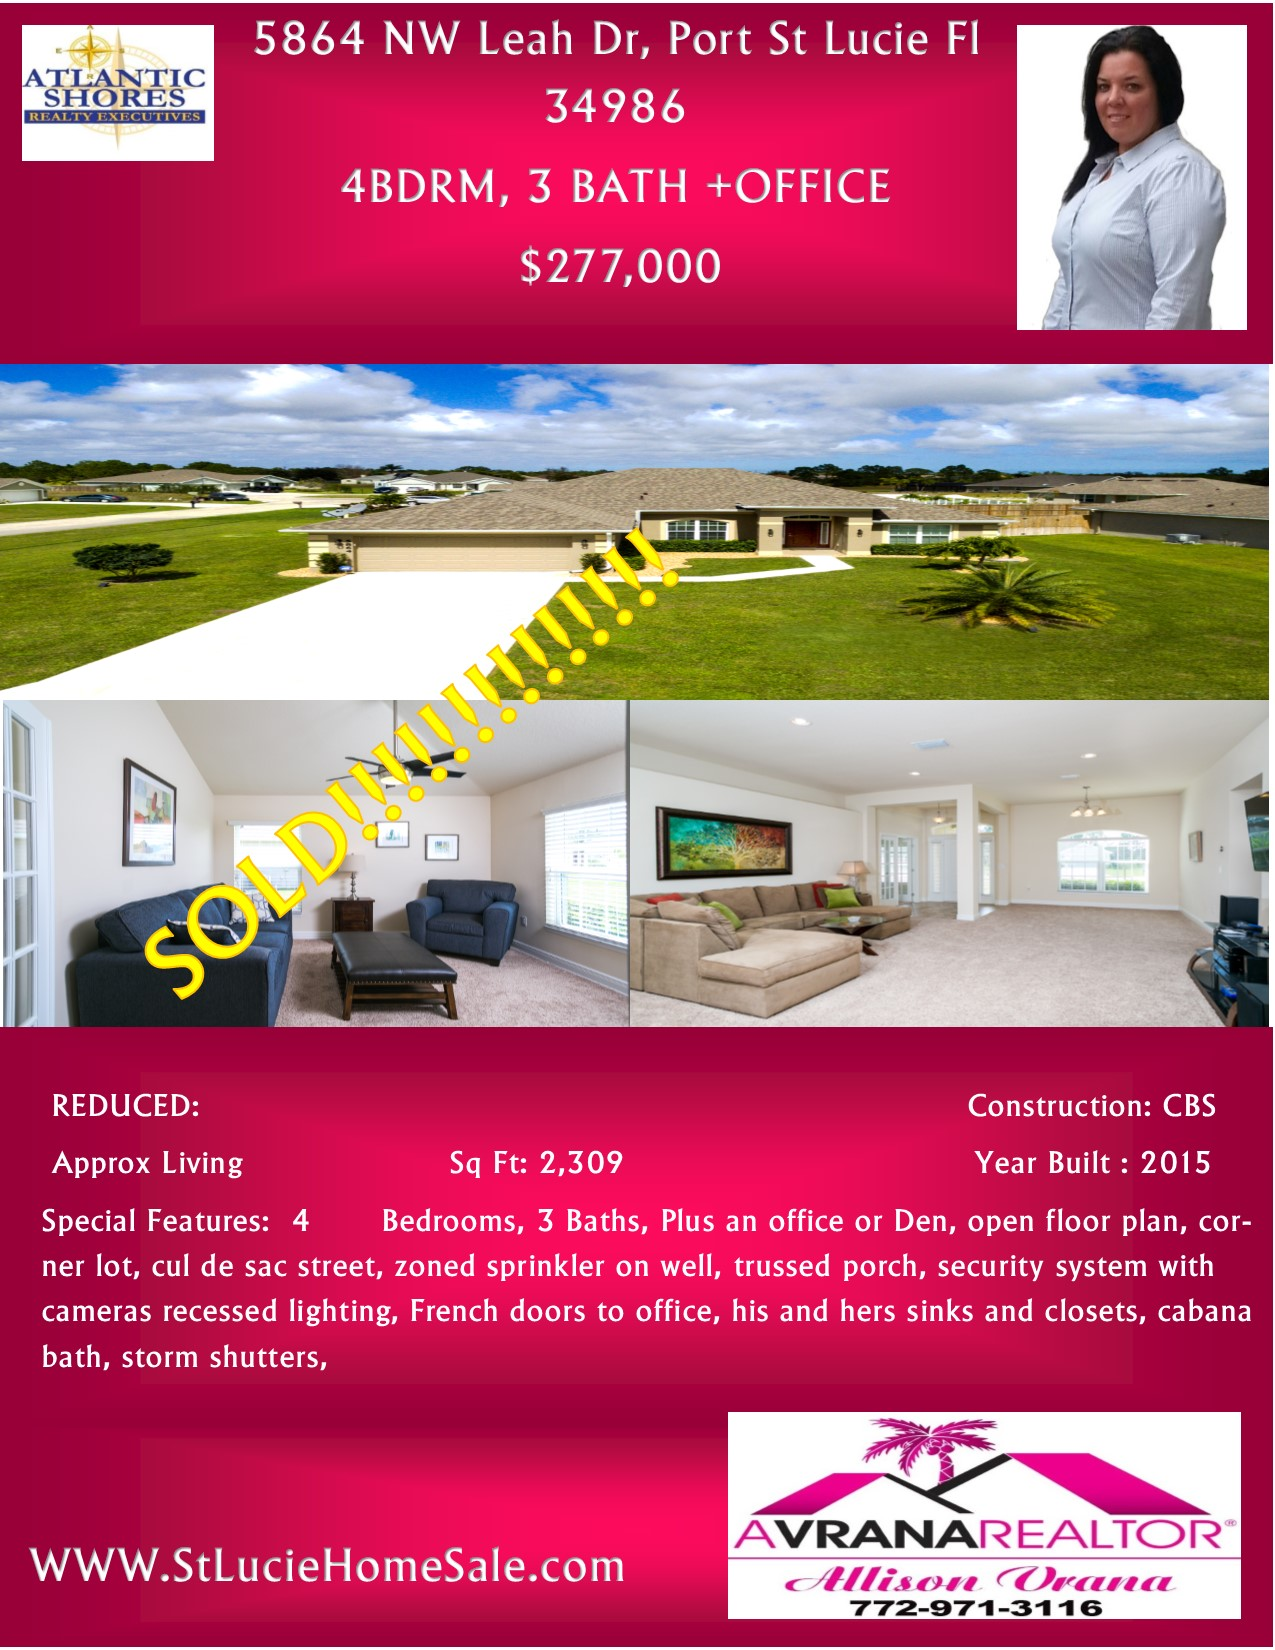 Sold Home, Great Price, Port St Lucie Florida Real Estate, 34986